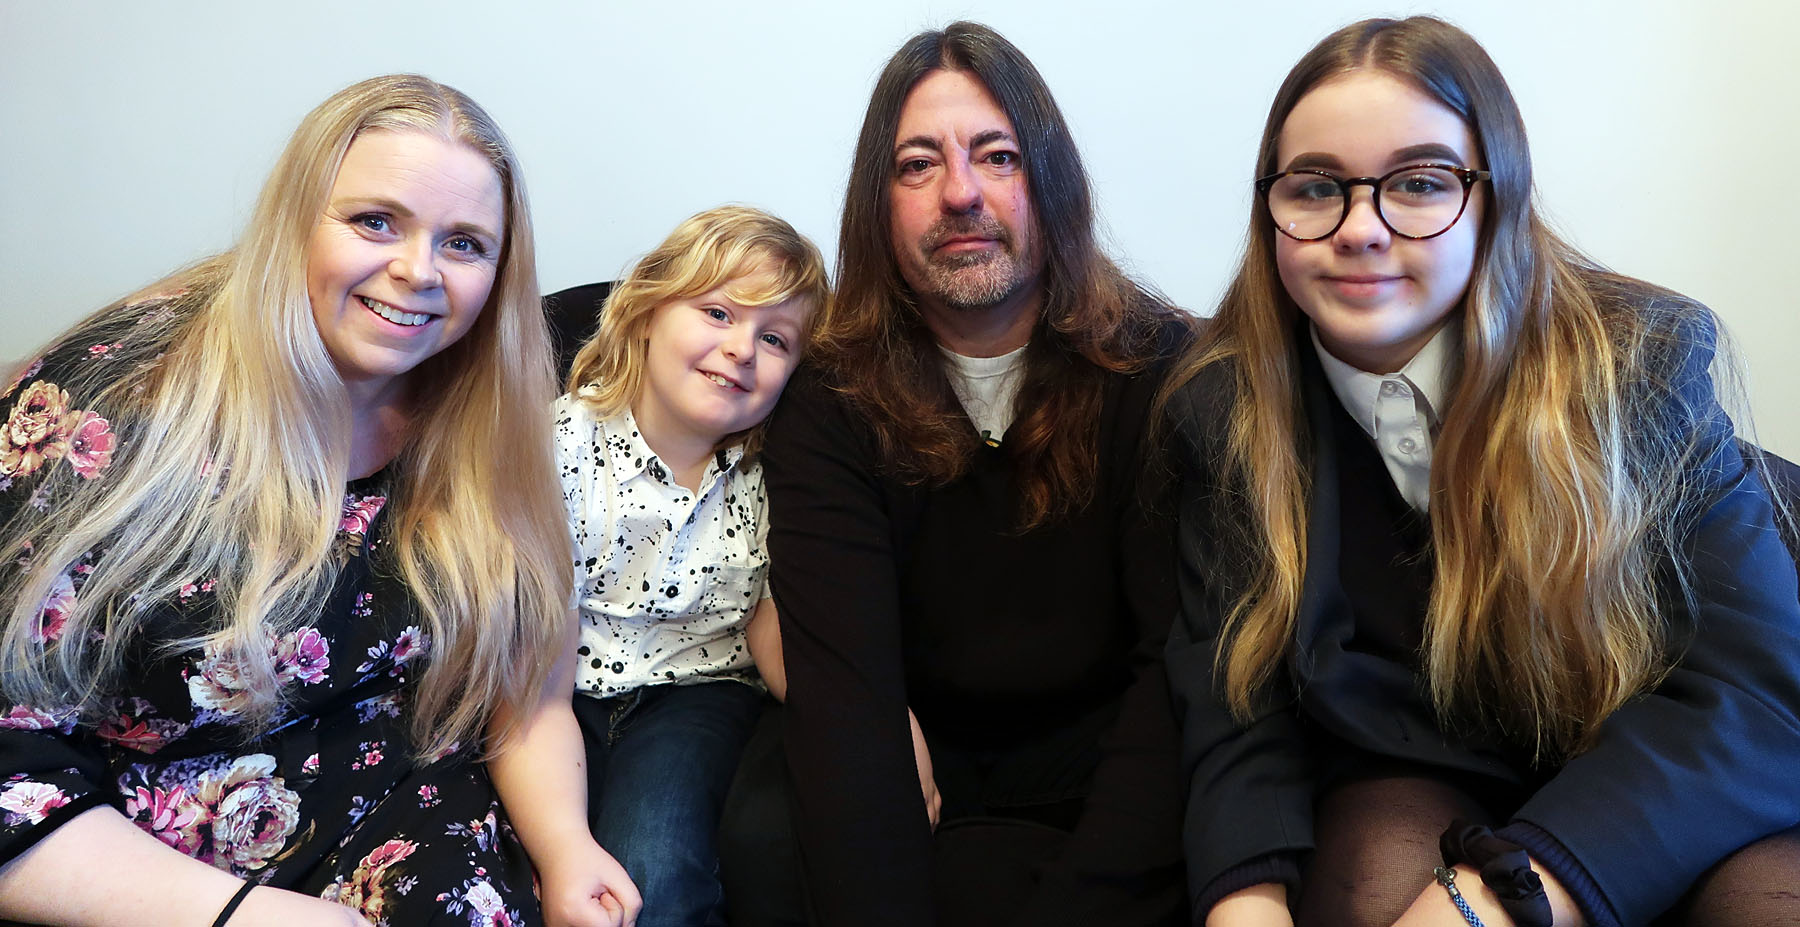 Adele, Jacob, Mark and Amber talk about ways to stay safe on the internet